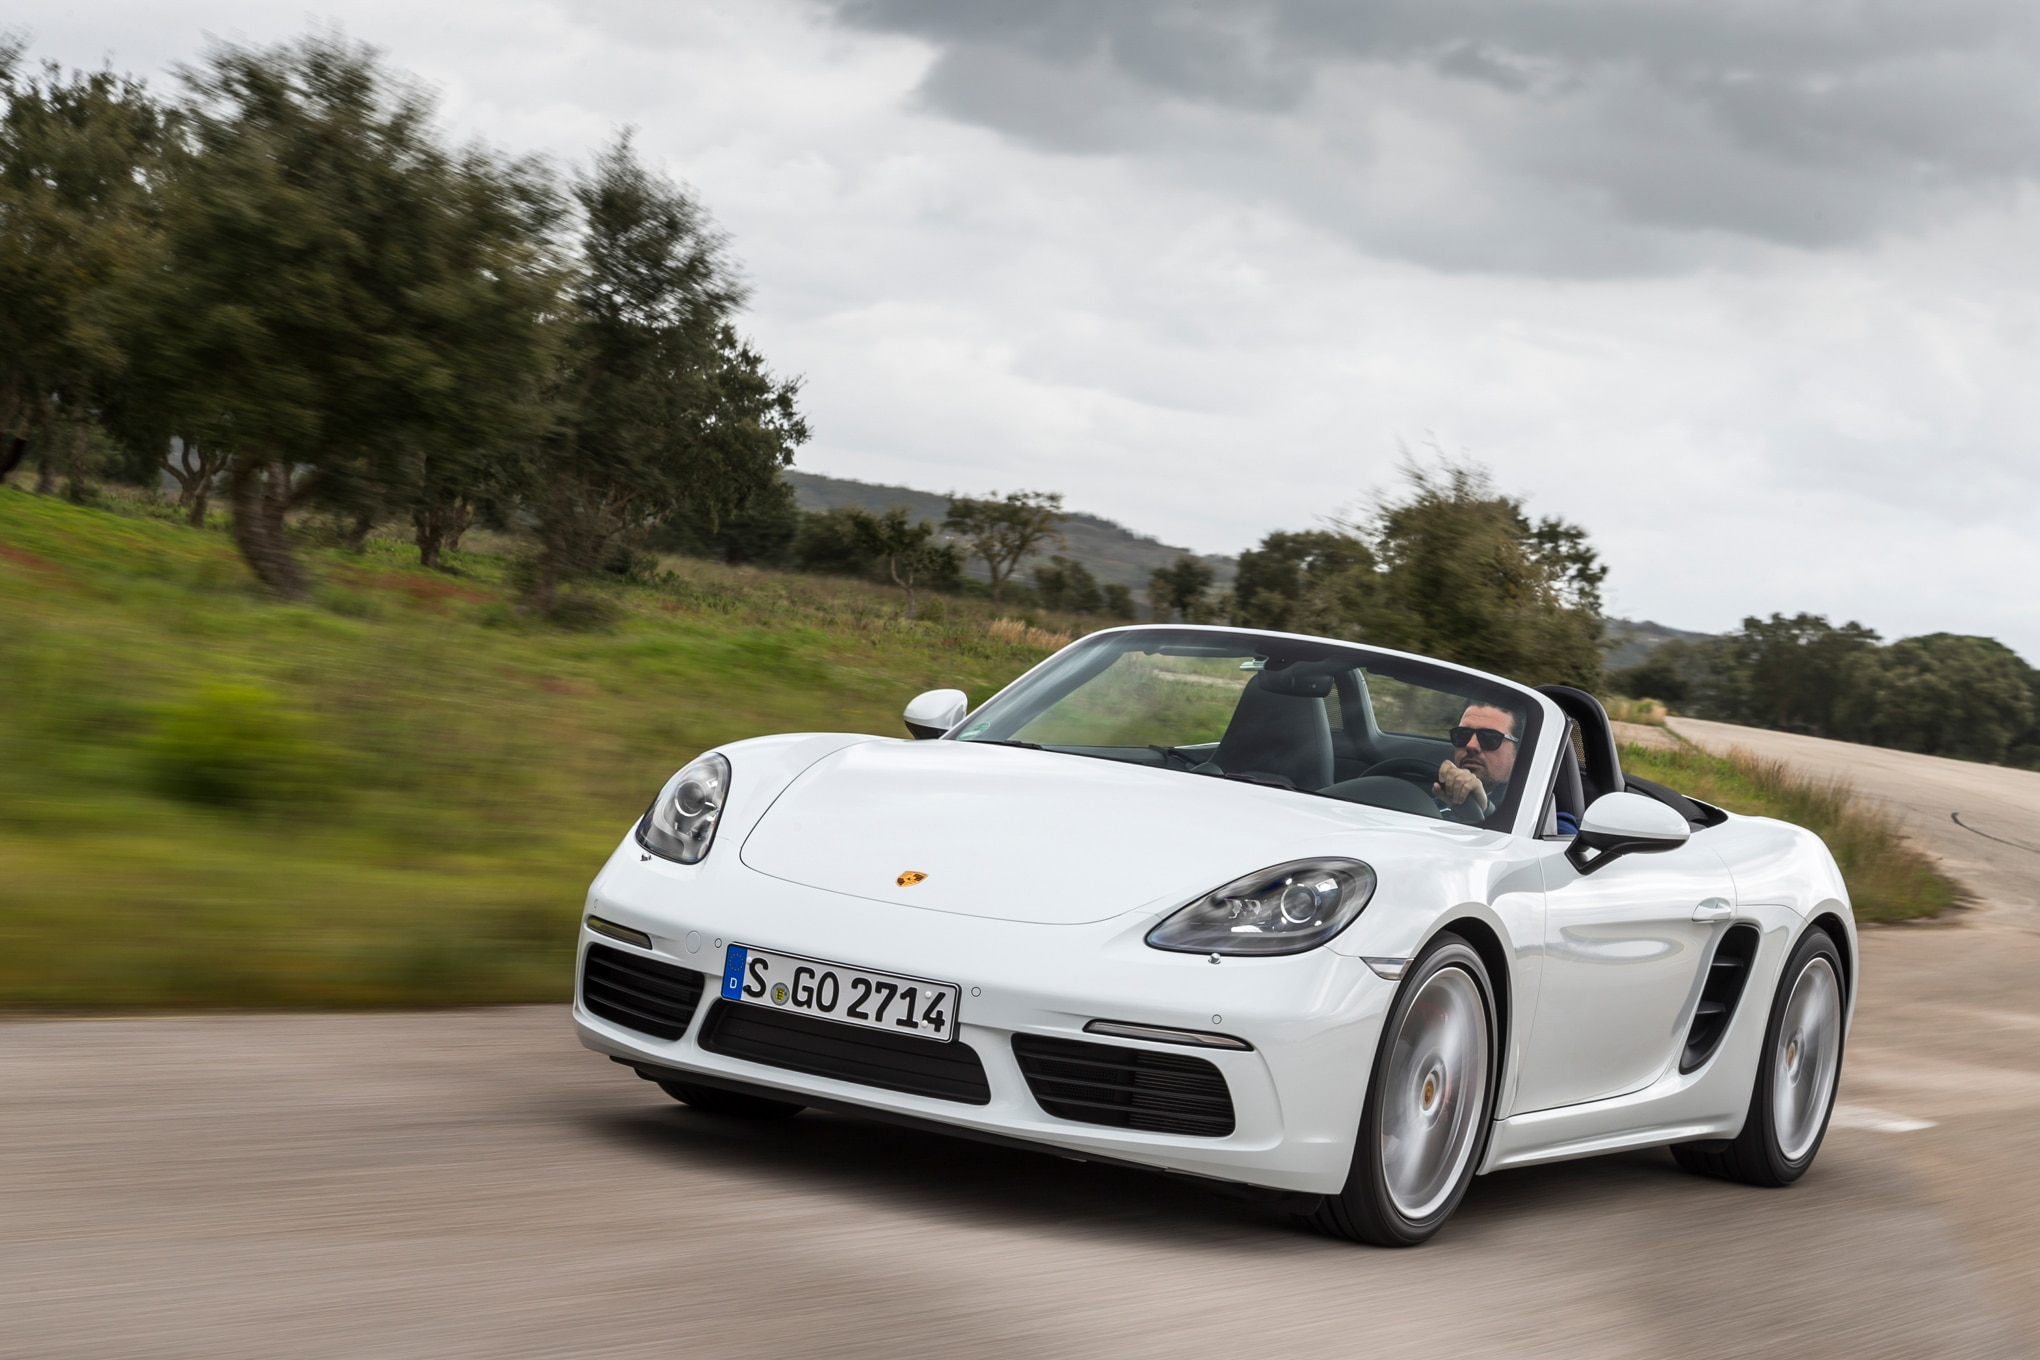 2017 Porsche 718 Boxster Fully Revealed With Turbo Flat Four Engines